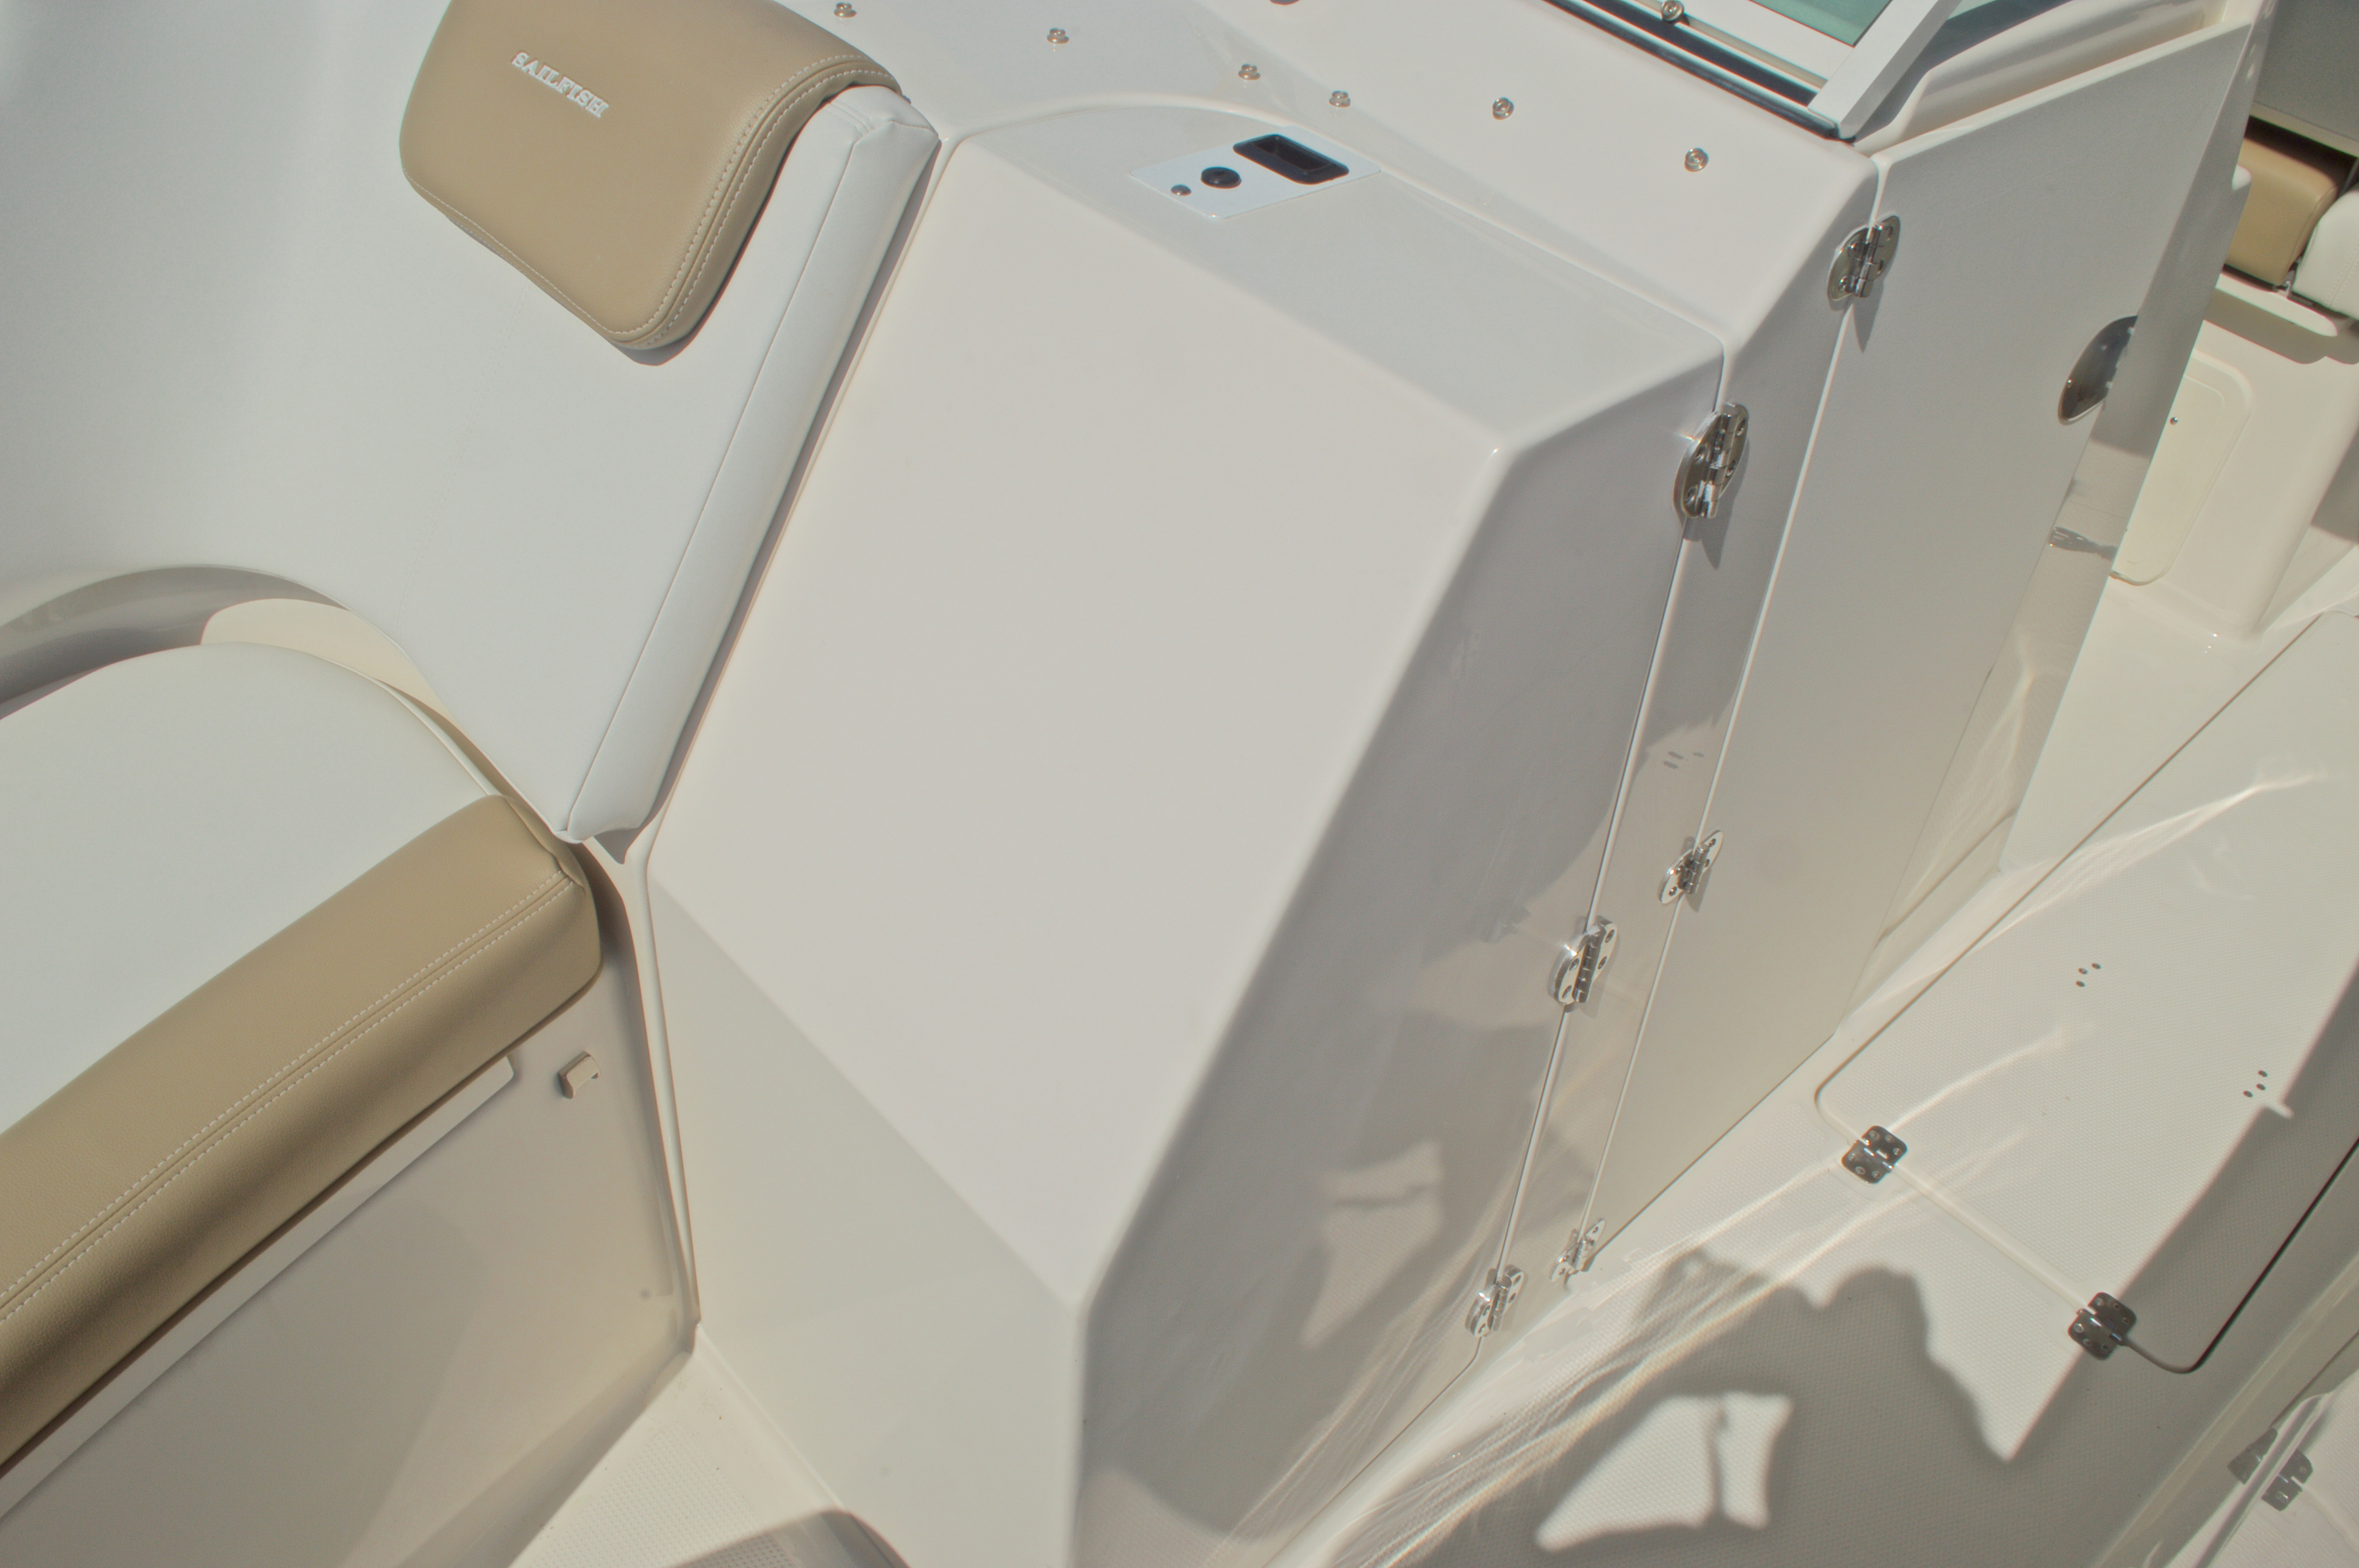 Thumbnail 80 for New 2016 Sailfish 325 Dual Console boat for sale in West Palm Beach, FL